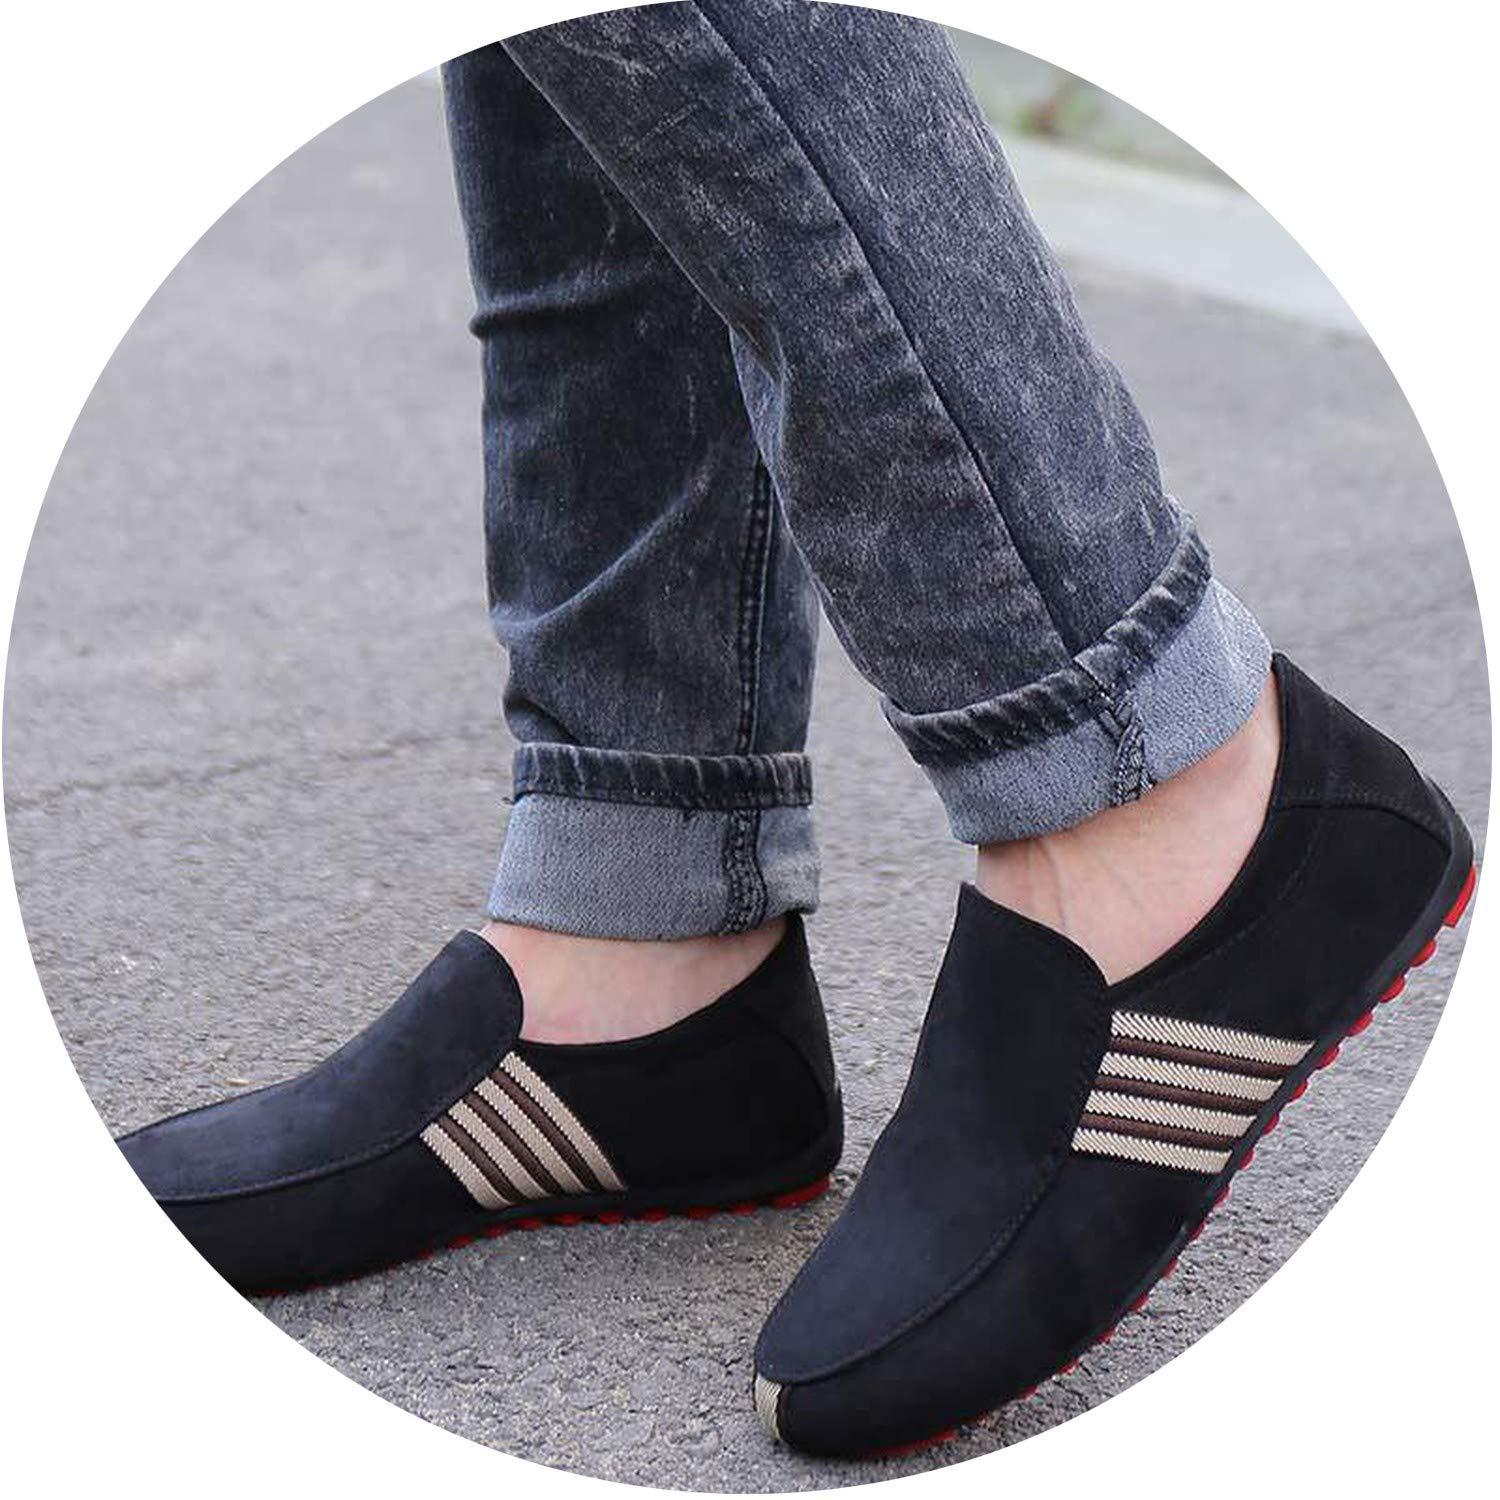 2019 New Spring Men Suede Leather Loafers Driving Shoes Moccasins Summer Fashion Mens Casual Shoes Flat Breathable Lazy Flats,Fabric Black,8.5,Spain